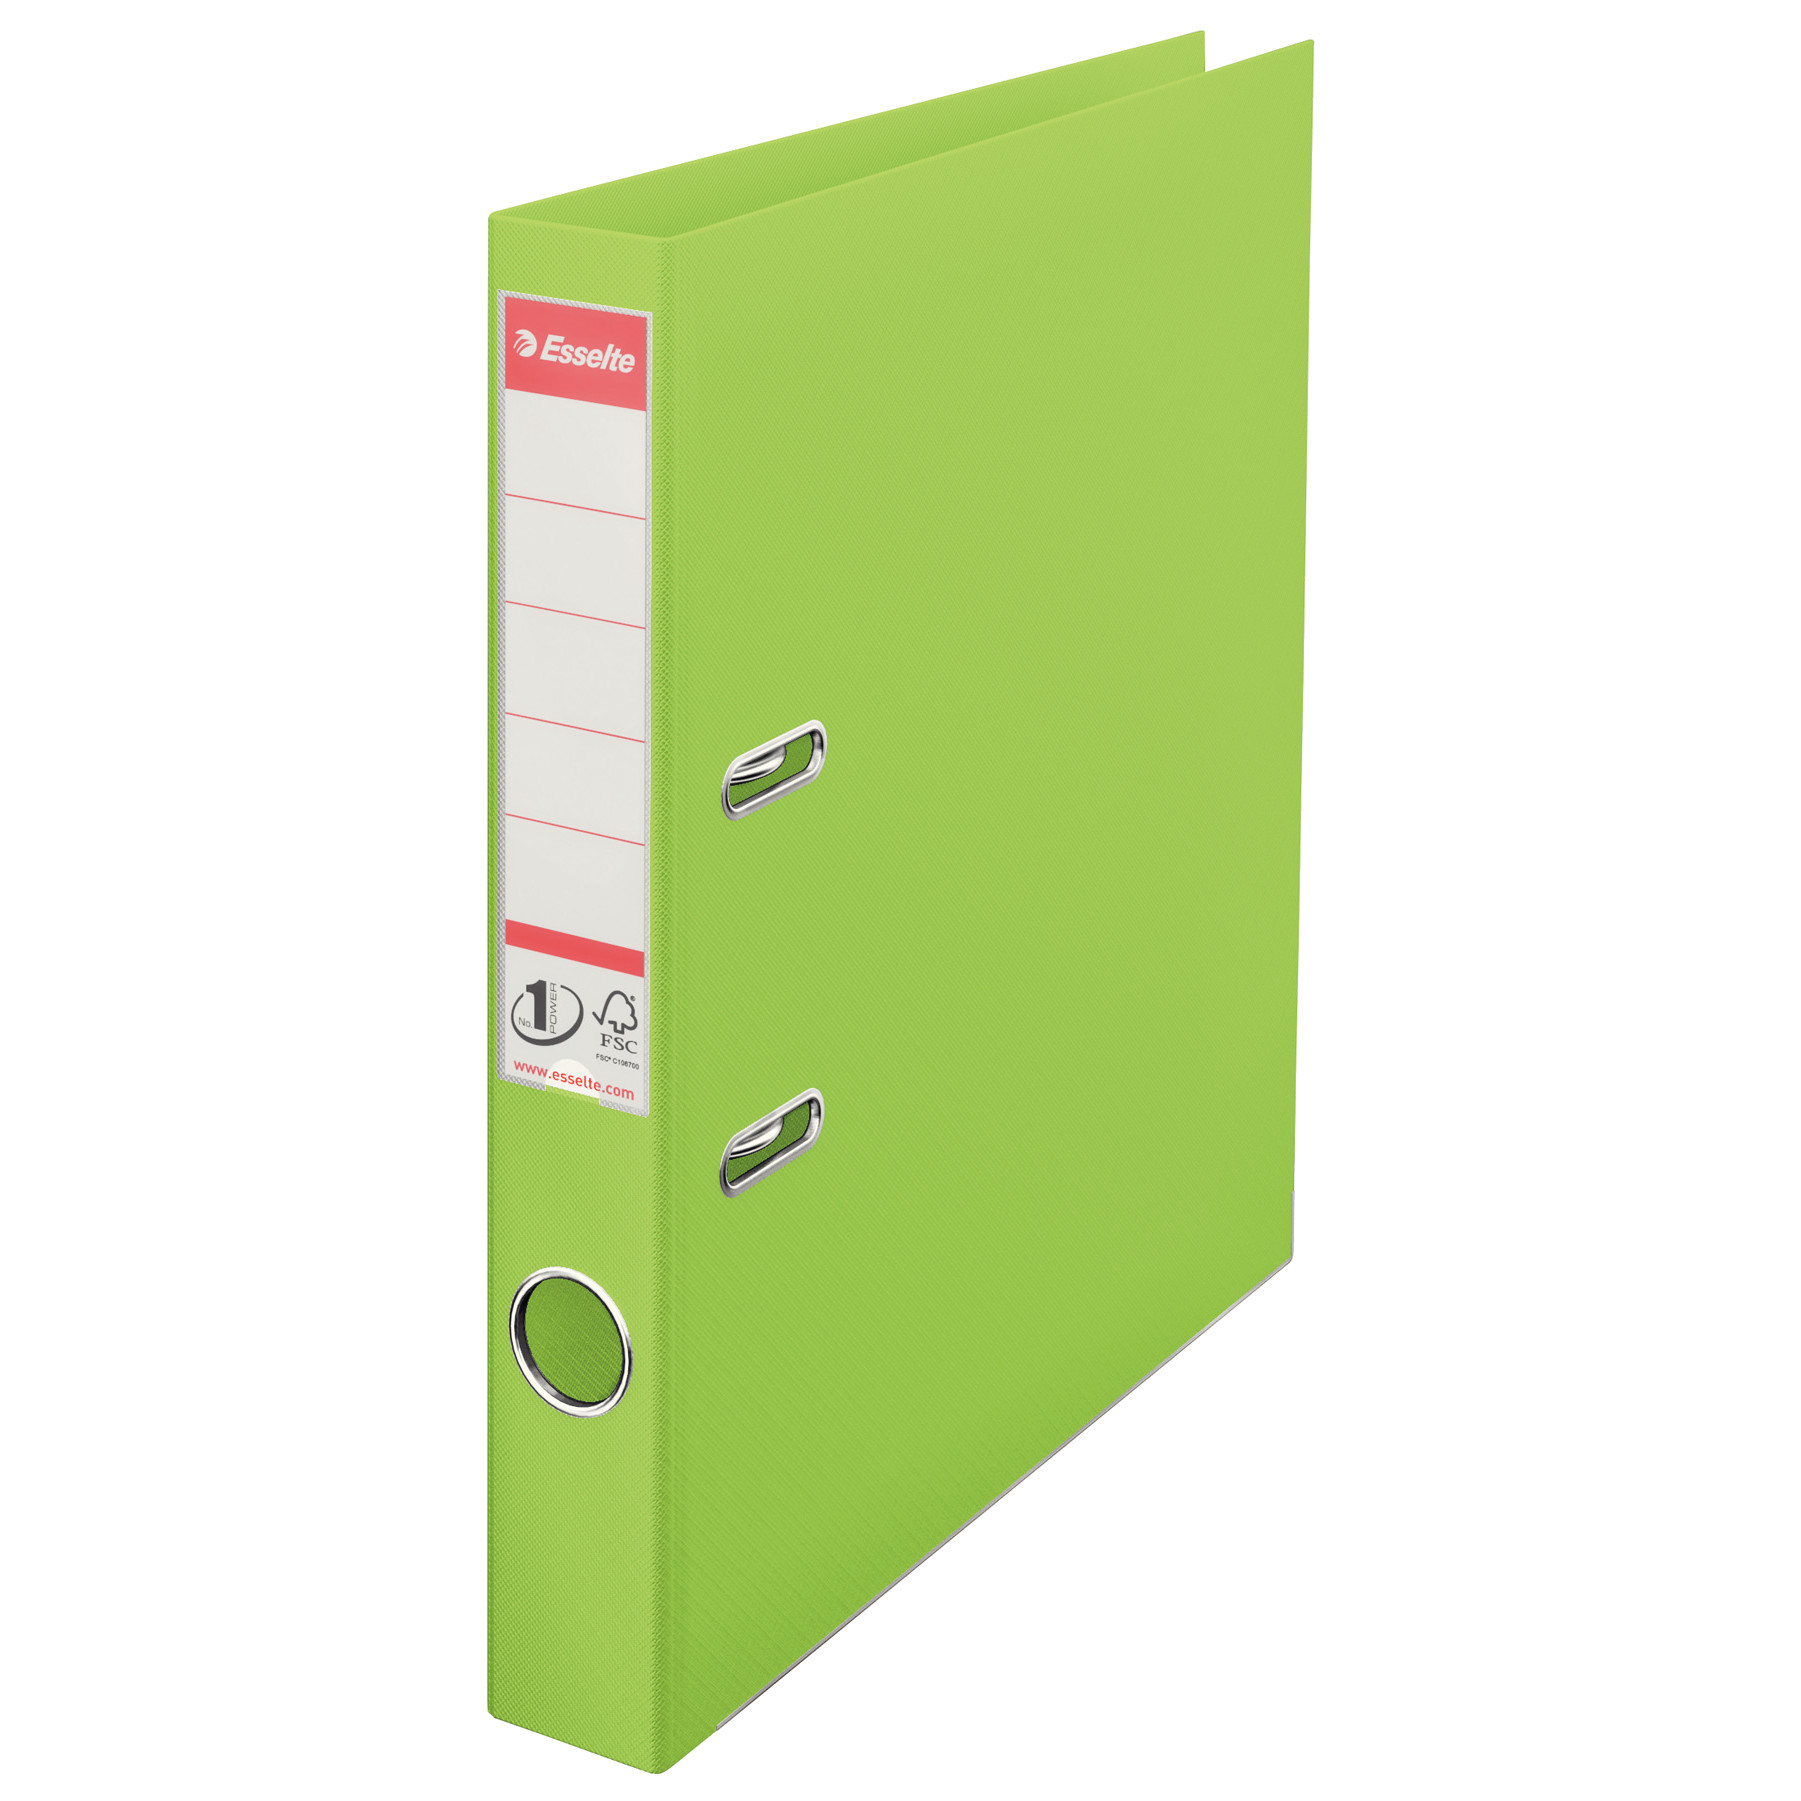 "Esselte Lever Arch File 1.5"" Spine A4 (4-32) - Lime Green"